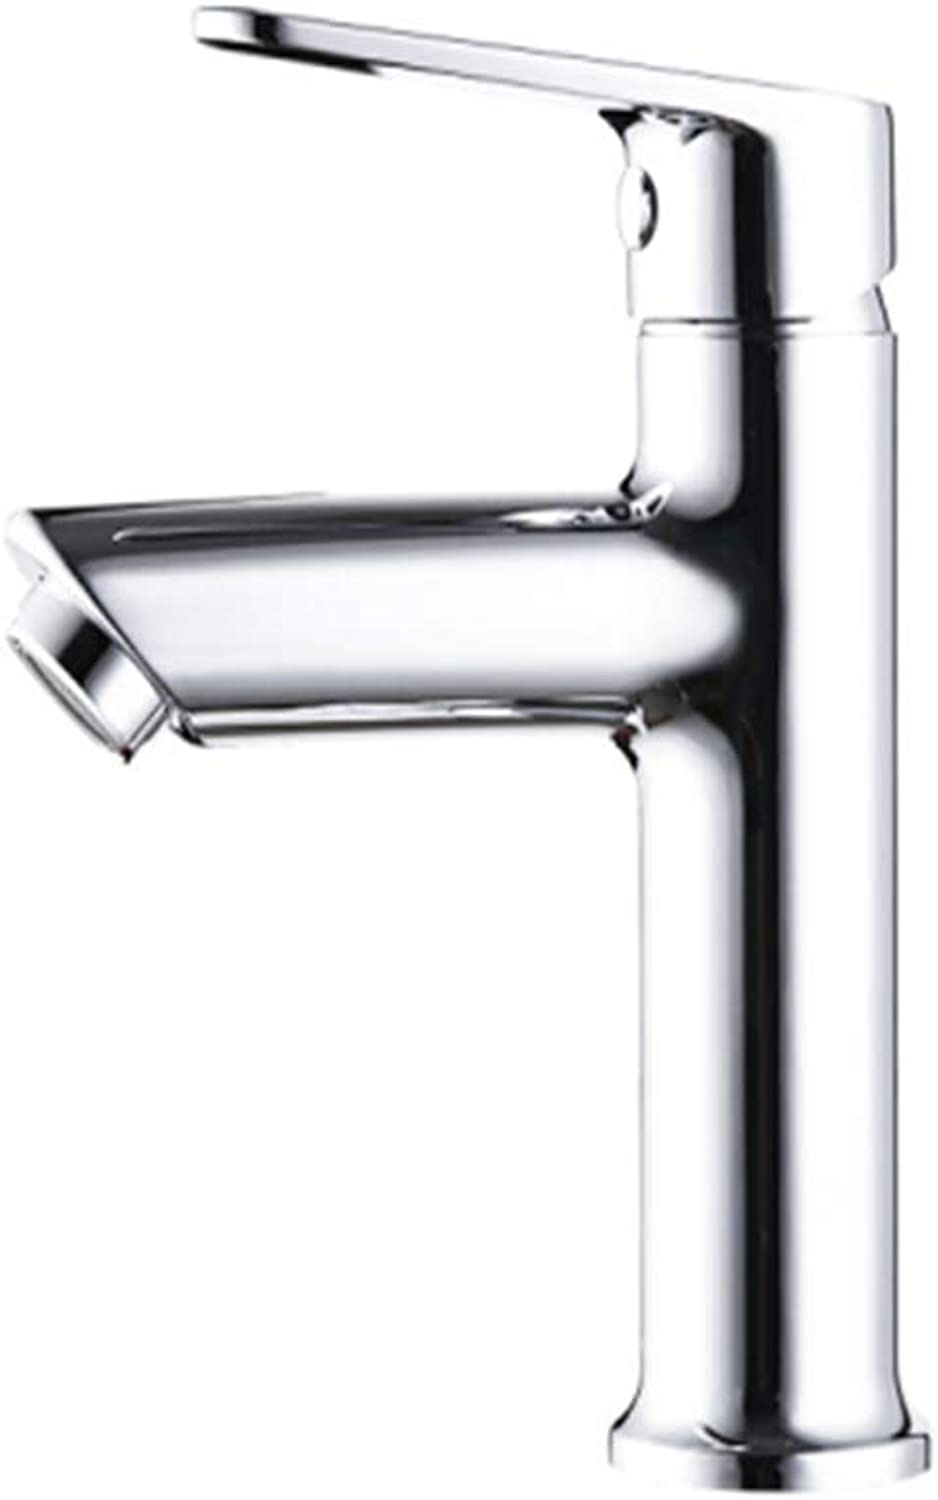 Kitchen Faucet Tapstainless Steelkitchen Faucet Probathroom Basin Cold and Hot Single Hole Hand Washing Faucet